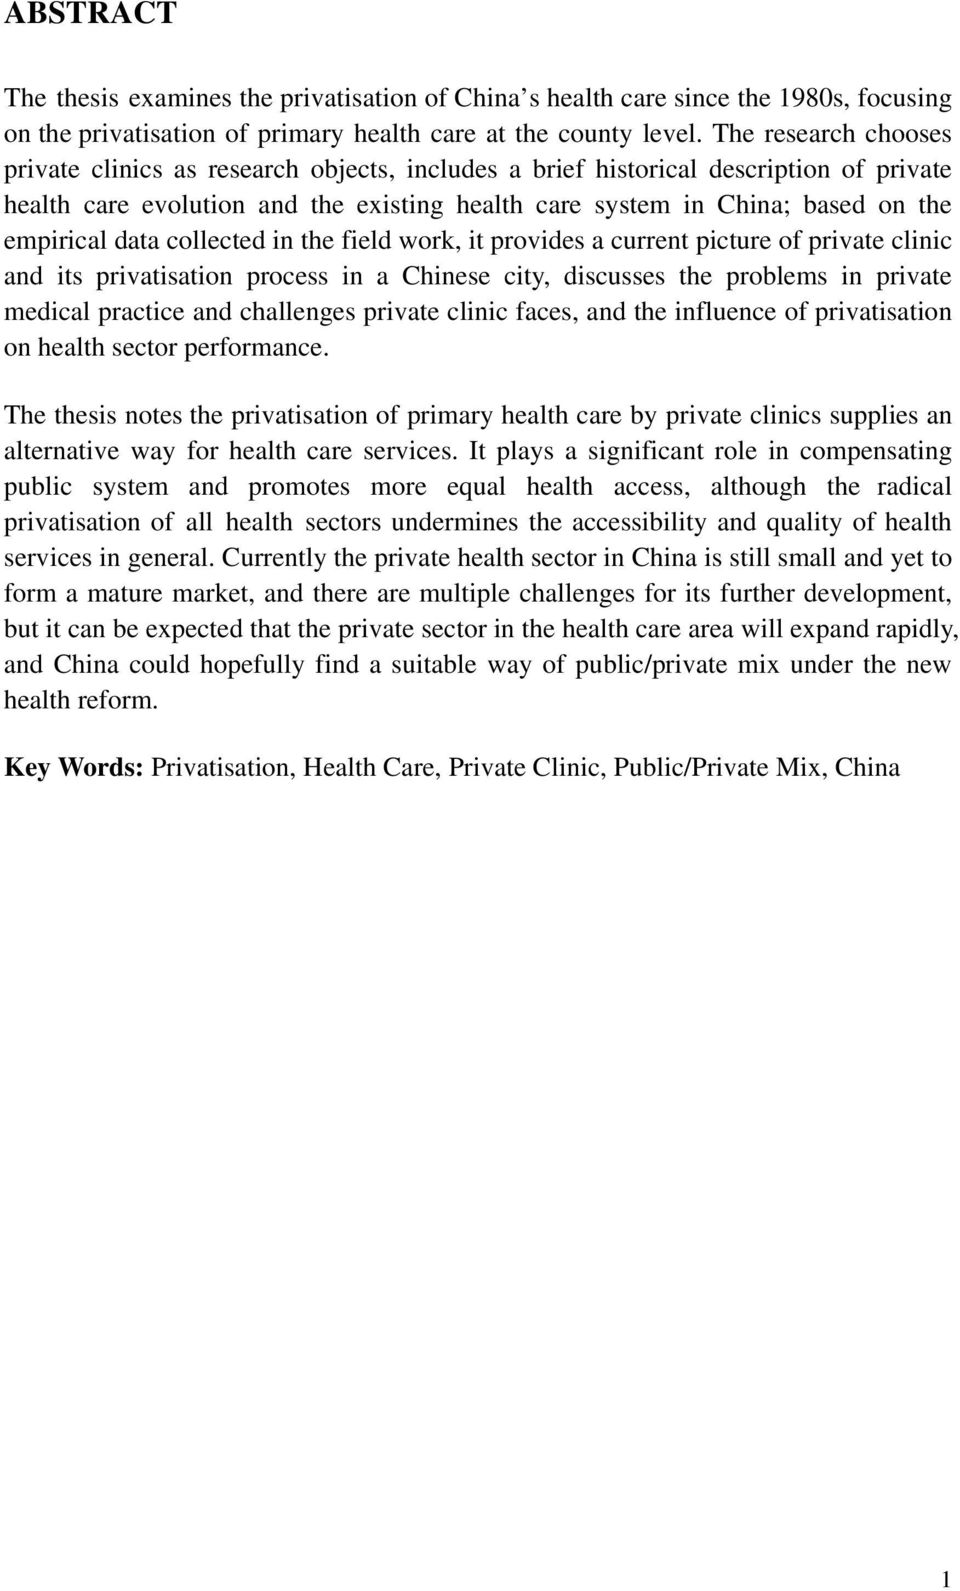 data collected in the field work, it provides a current picture of private clinic and its privatisation process in a Chinese city, discusses the problems in private medical practice and challenges